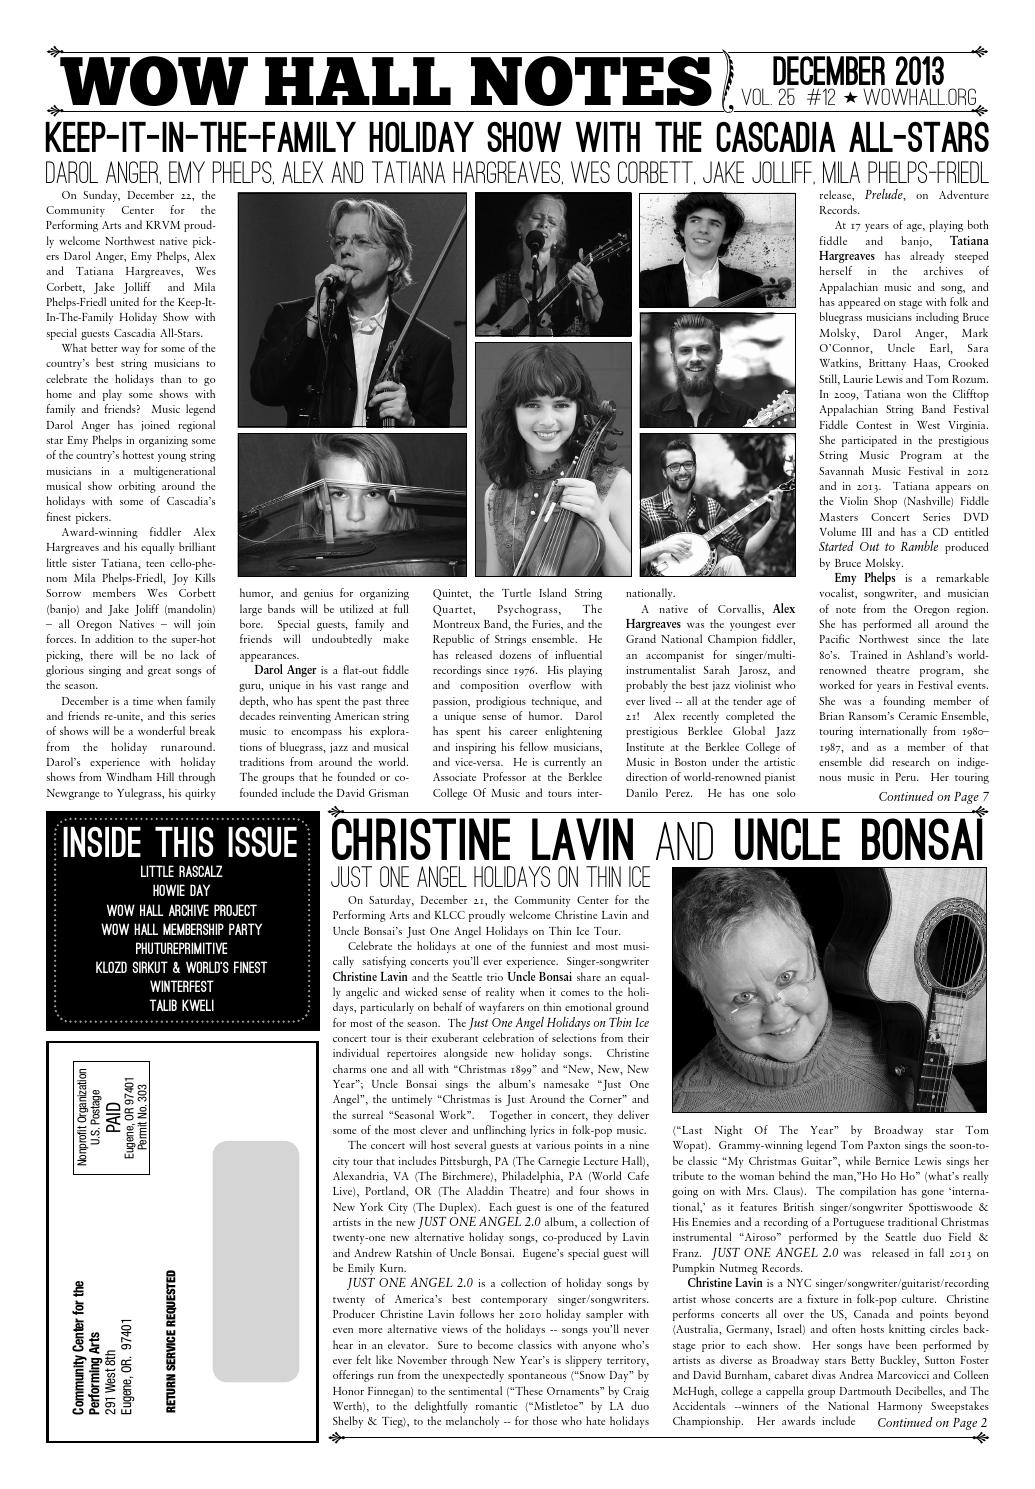 WOW Hall Notes - December 2013 by WOW Hall - issuu